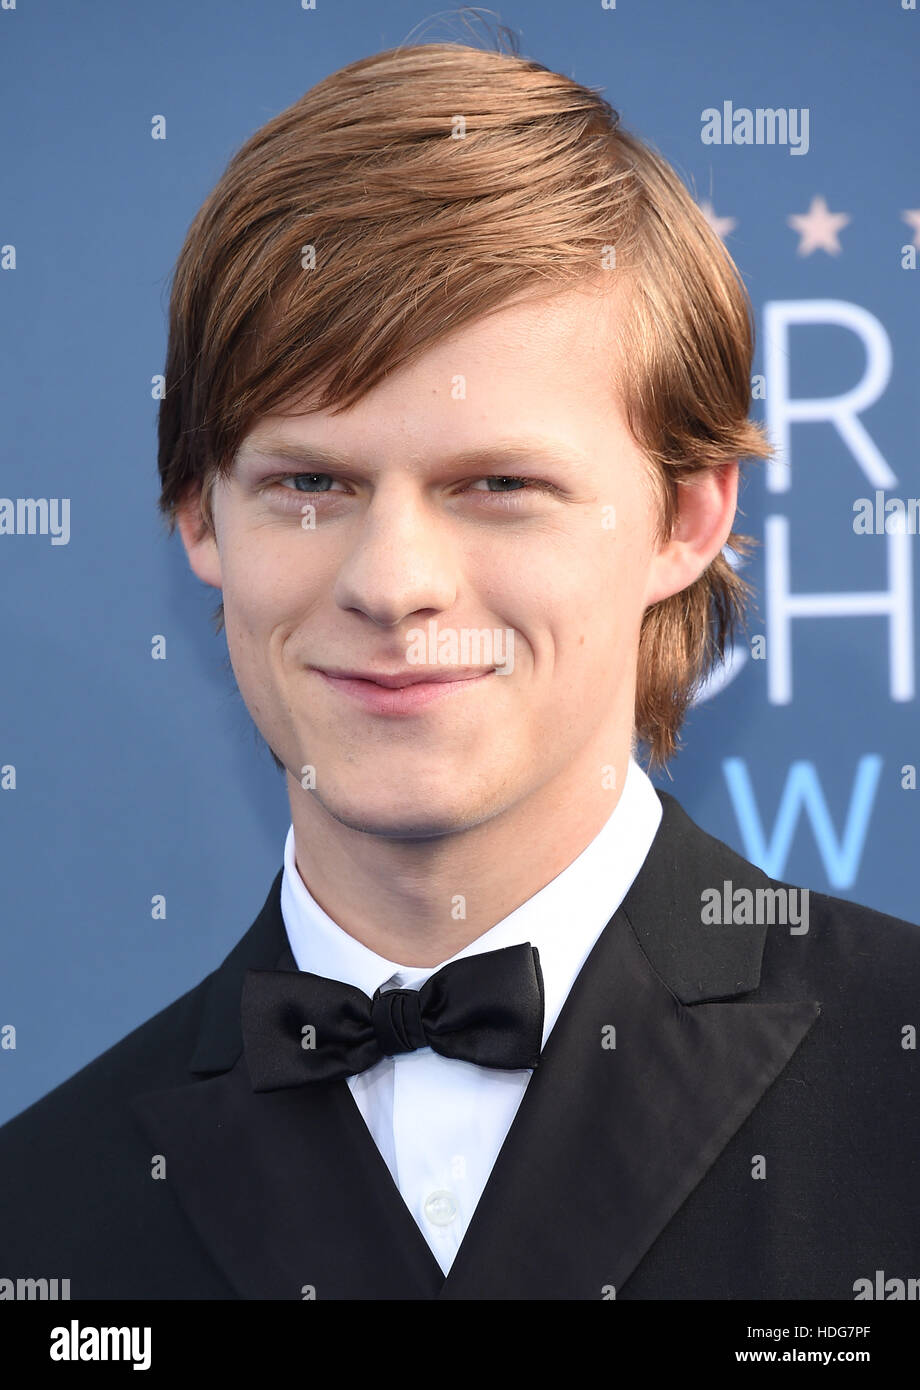 Santa Monica, Californie, USA. Dec 11, 2016. Lucas Hedges arrive pour la 22e Critics' Choice Awards à Barker Photo Stock